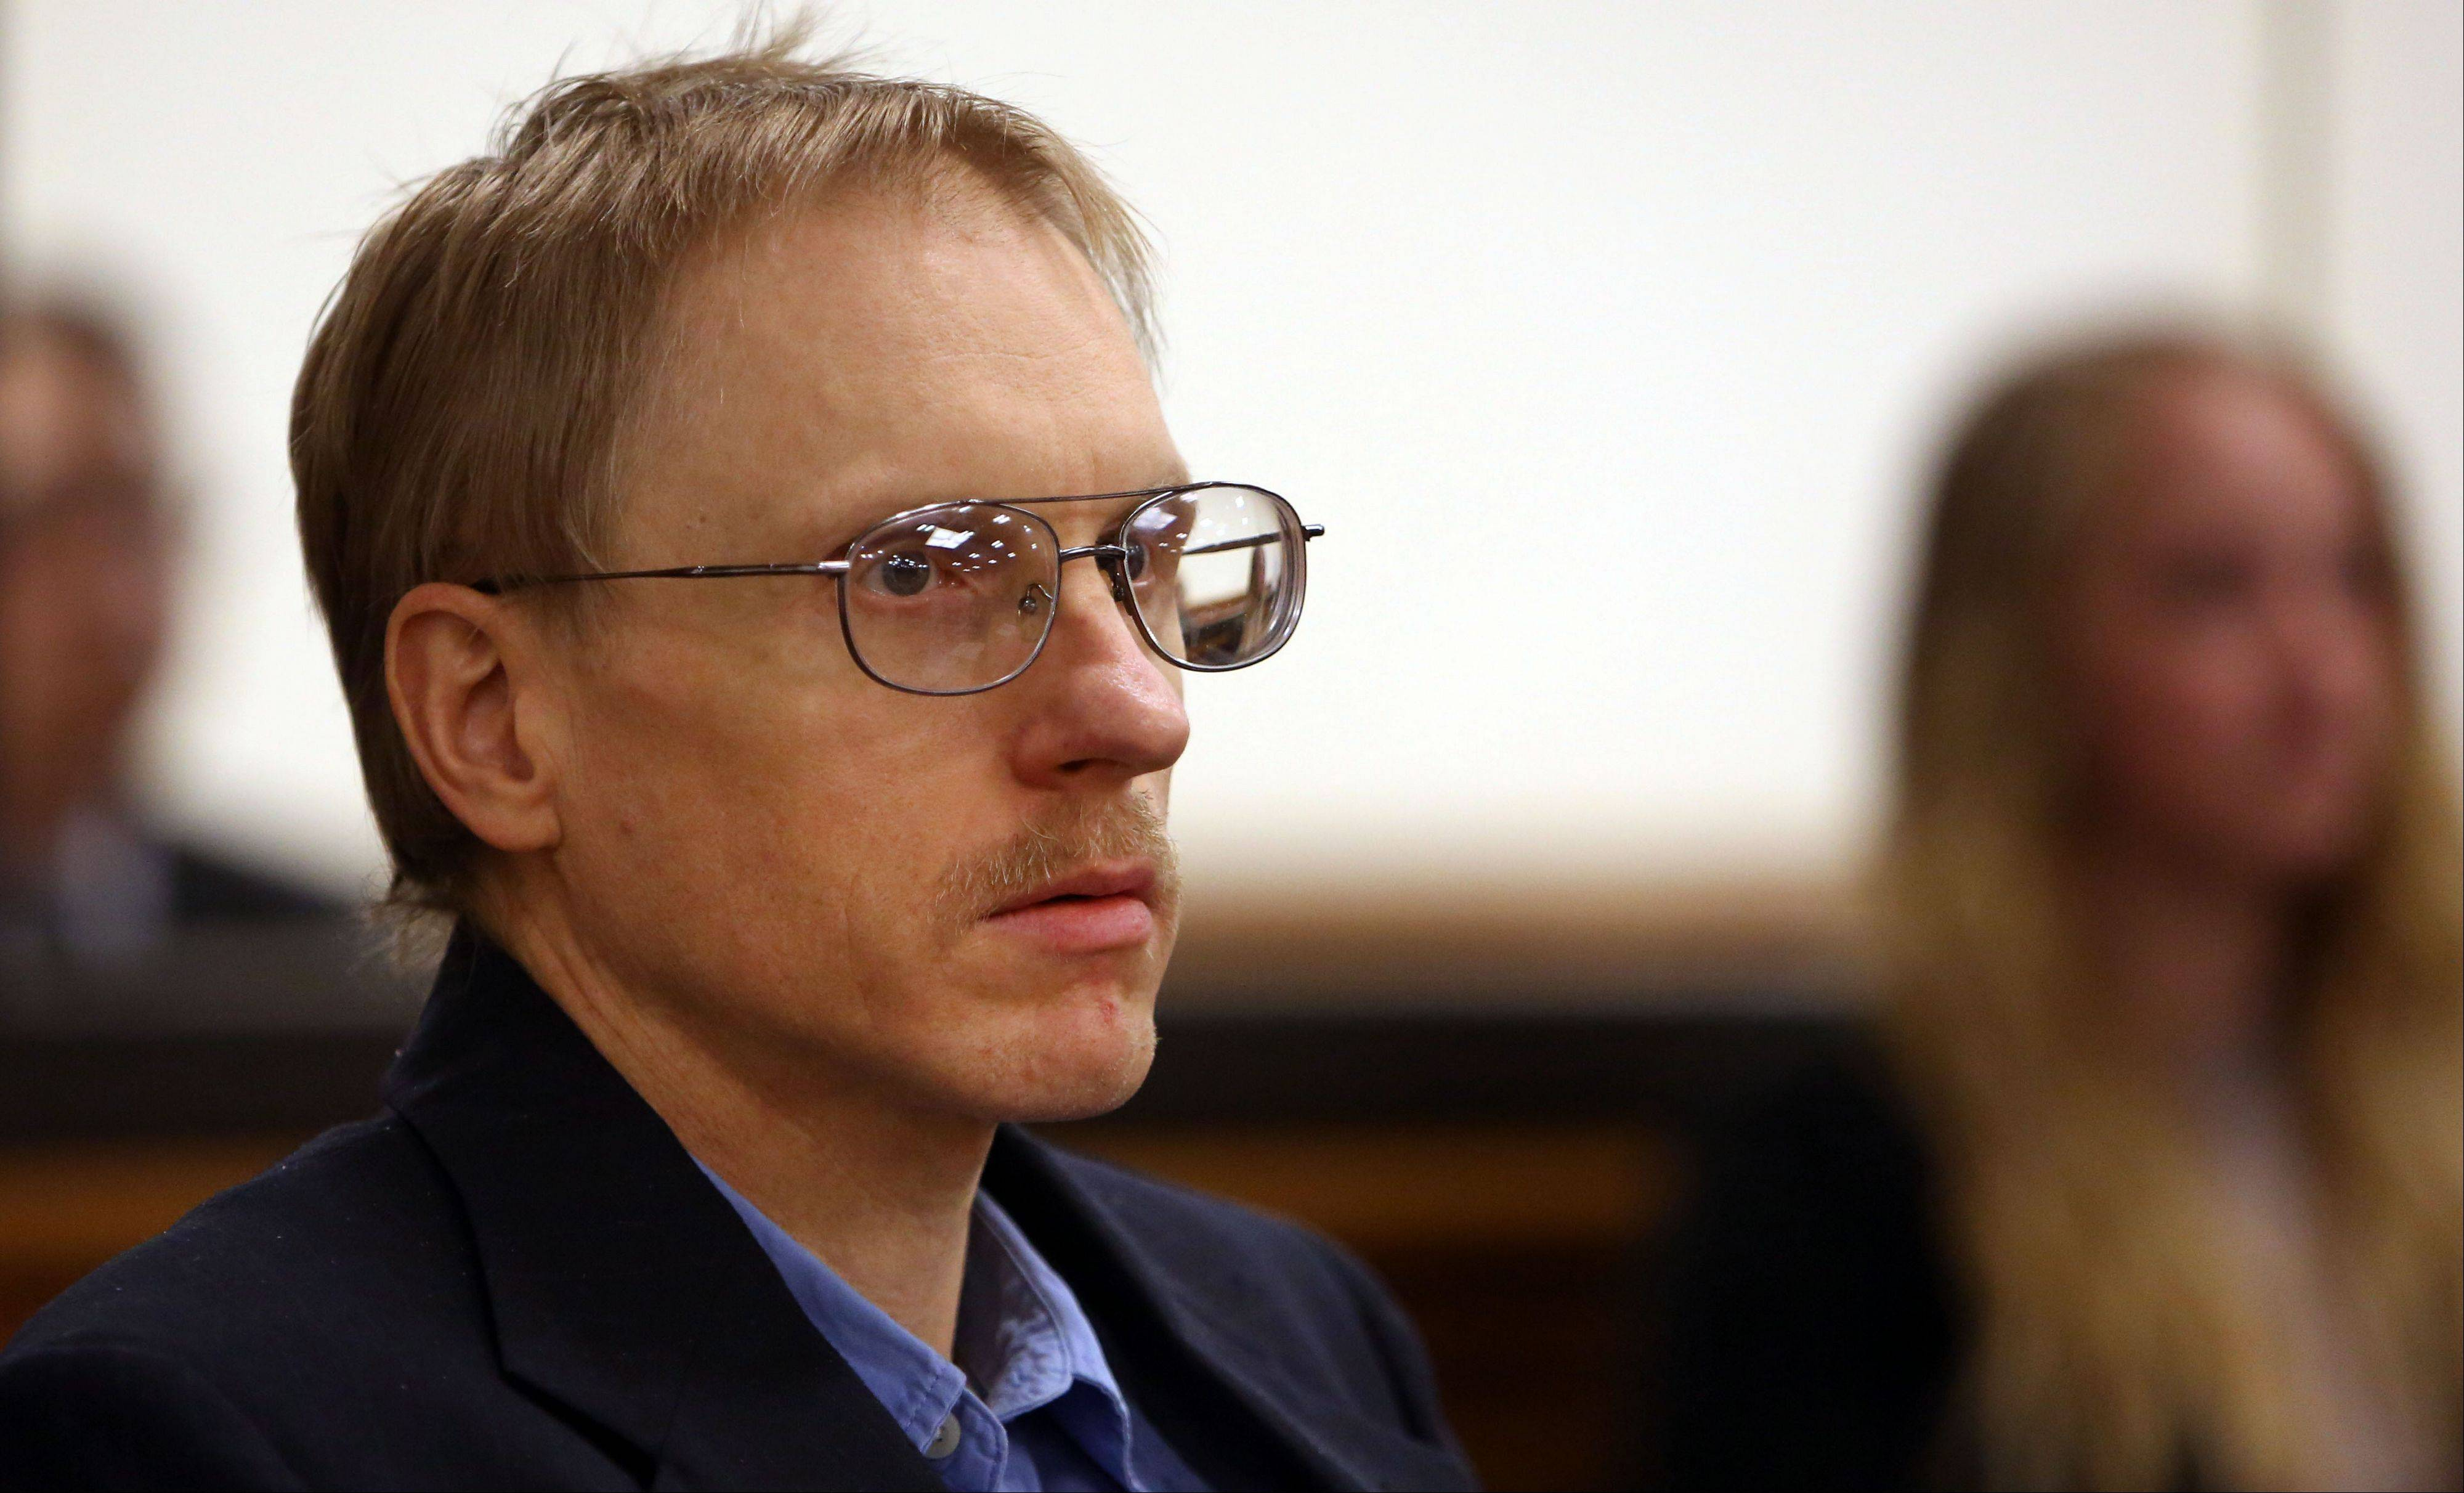 Ronald Stolberg listens to the jury read their verdict after being convicted of involuntary manslaughter in the 2011 death of his wife, Rachel Stolberg, in the courtroom of Judge Mark Levitt in Lake County on Tuesday, May 28, 2013, in Waukegan.